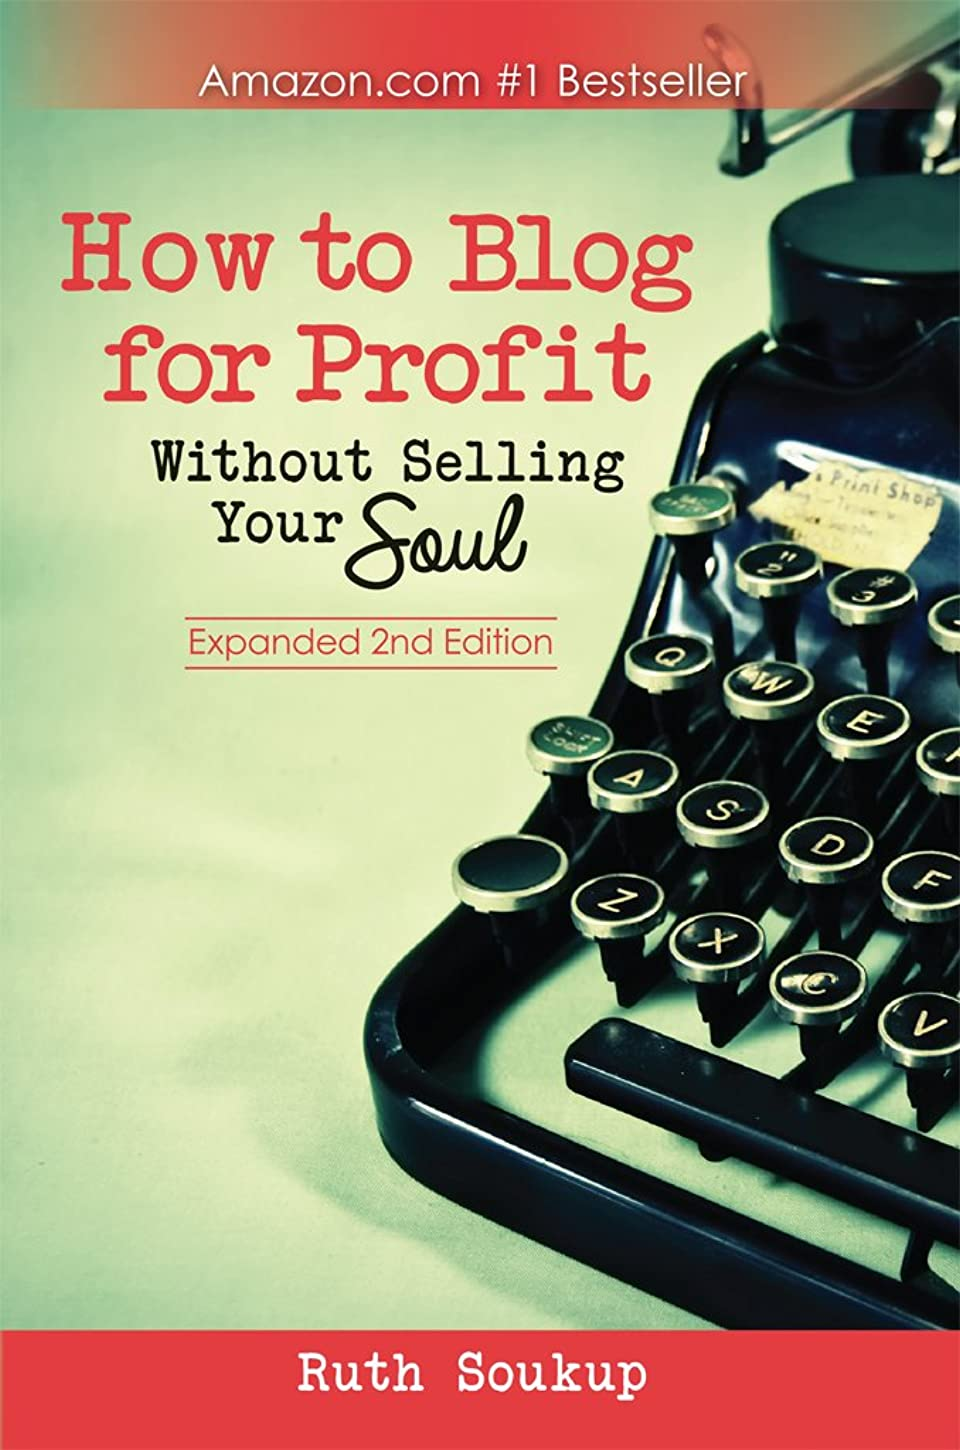 環境に優しい書士公使館How To Blog For Profit: Without Selling Your Soul (English Edition)